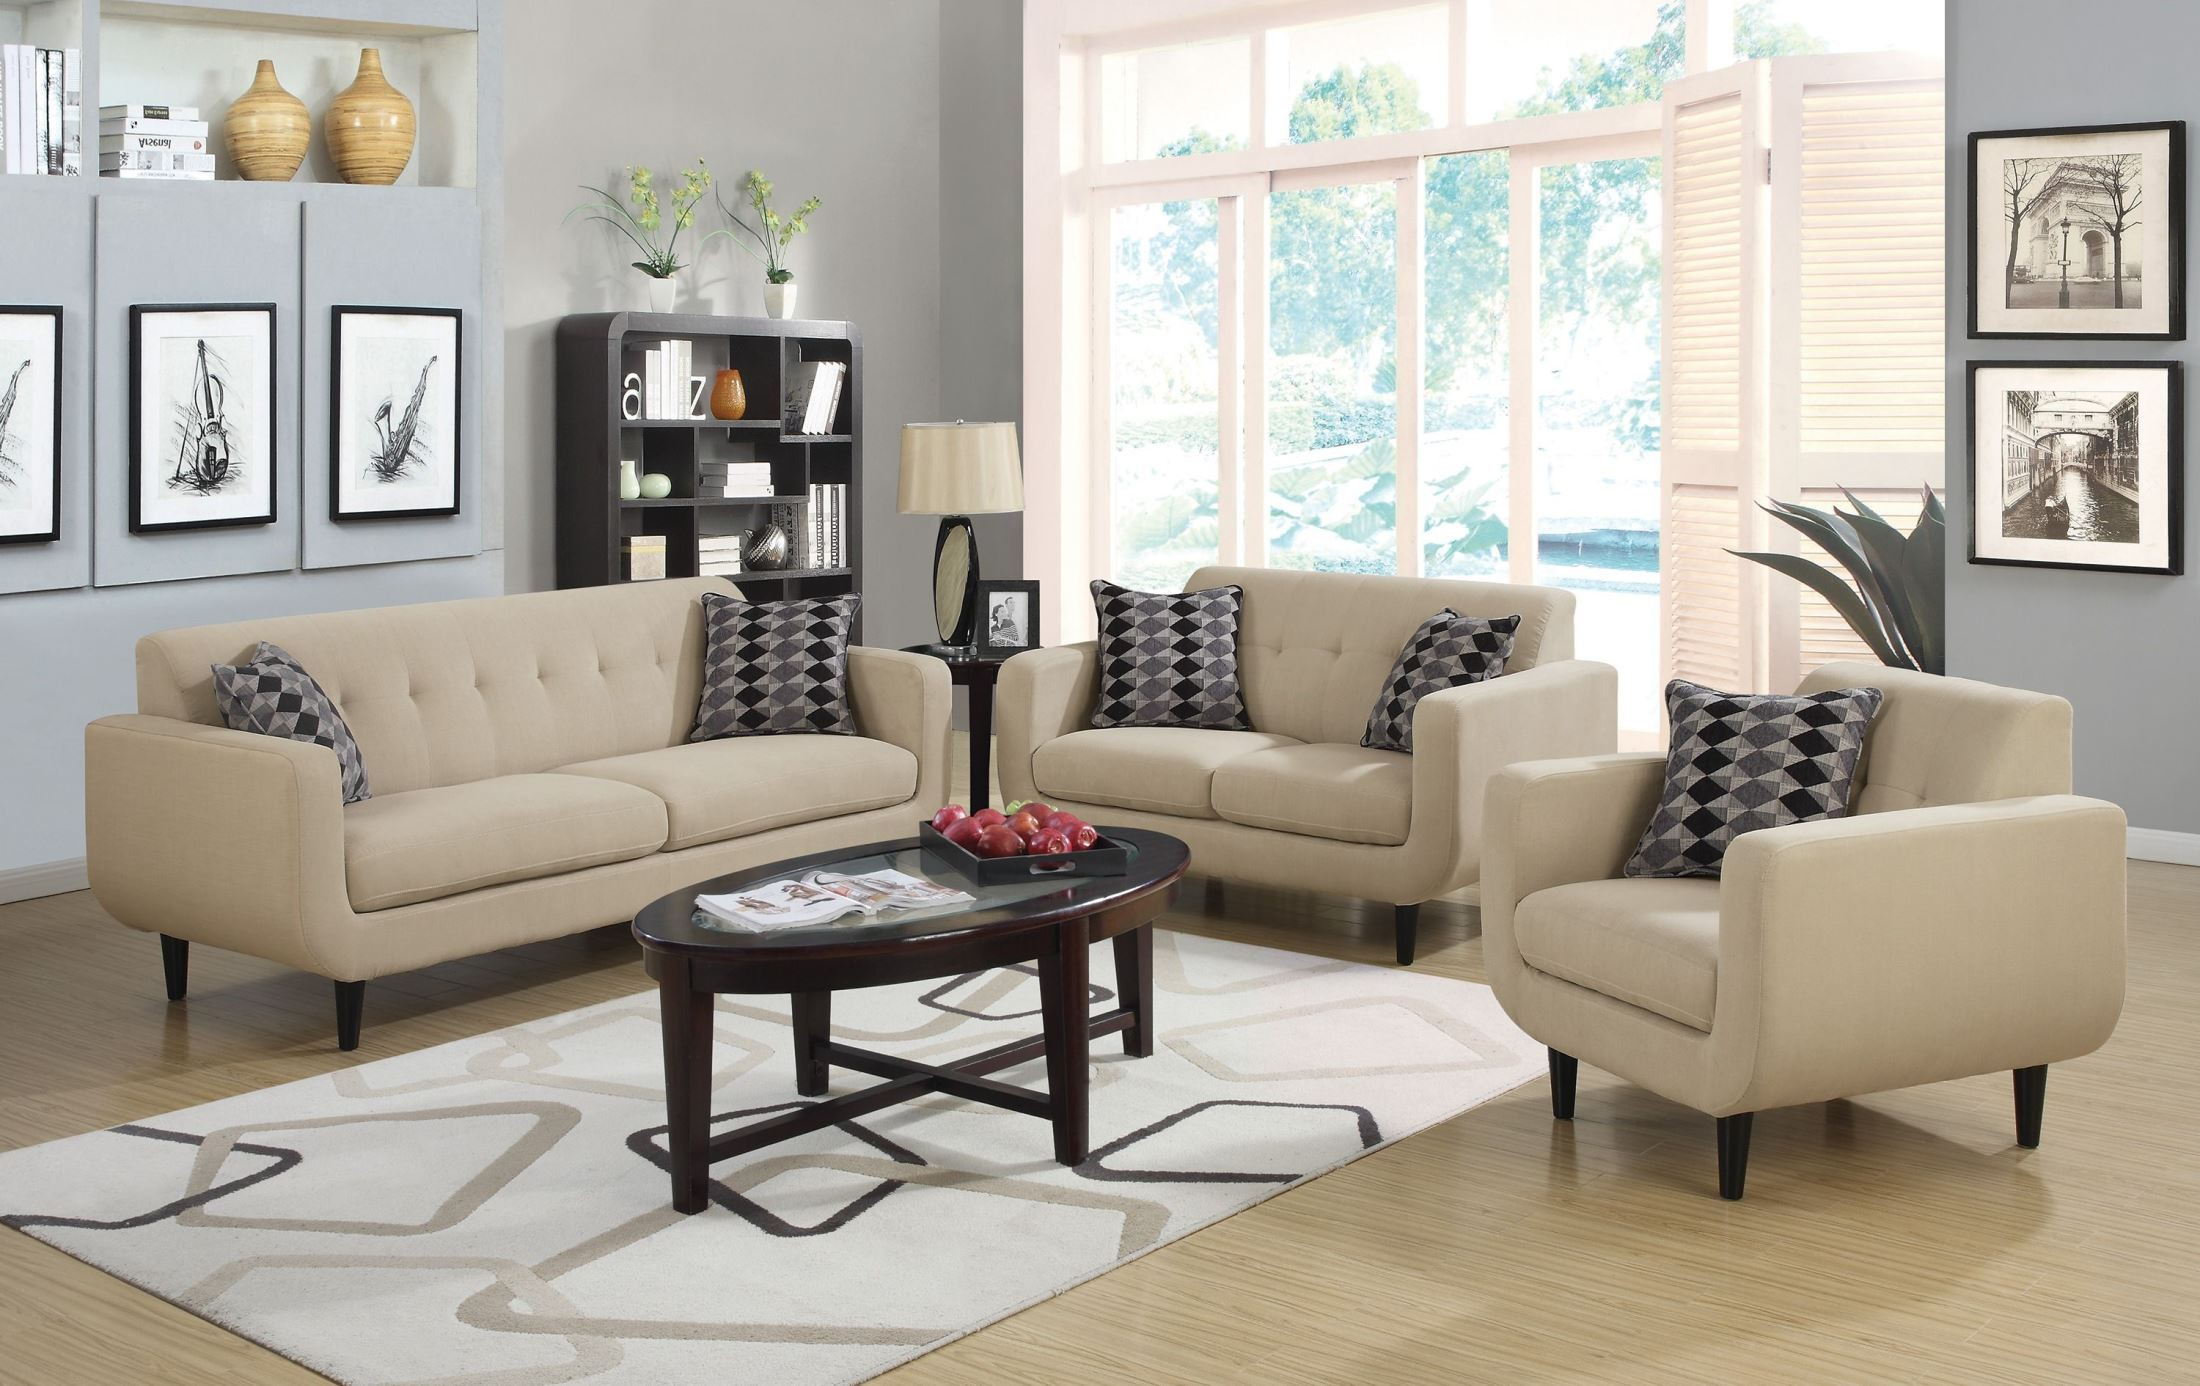 Stansall Ivory Living Room Set From Coaster 505204 Coleman Furniture